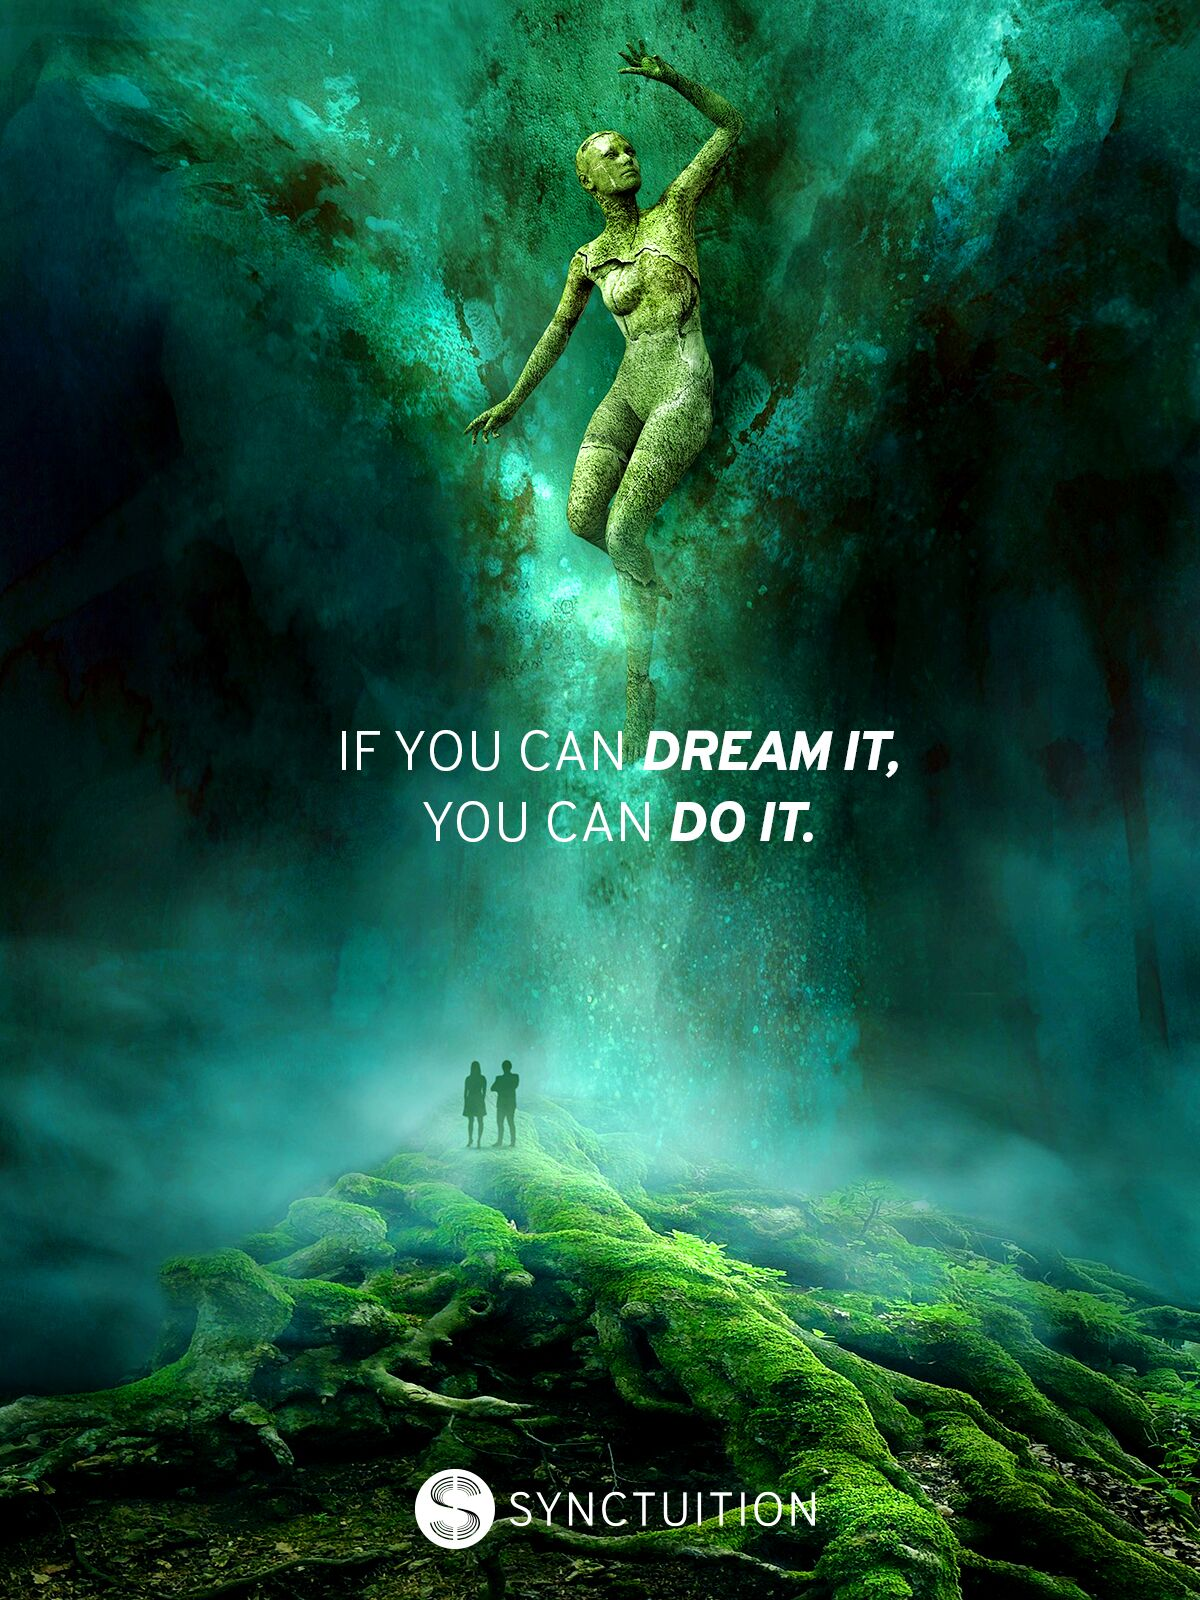 Quote on dreaming with a mesmerizing green view of magical realism